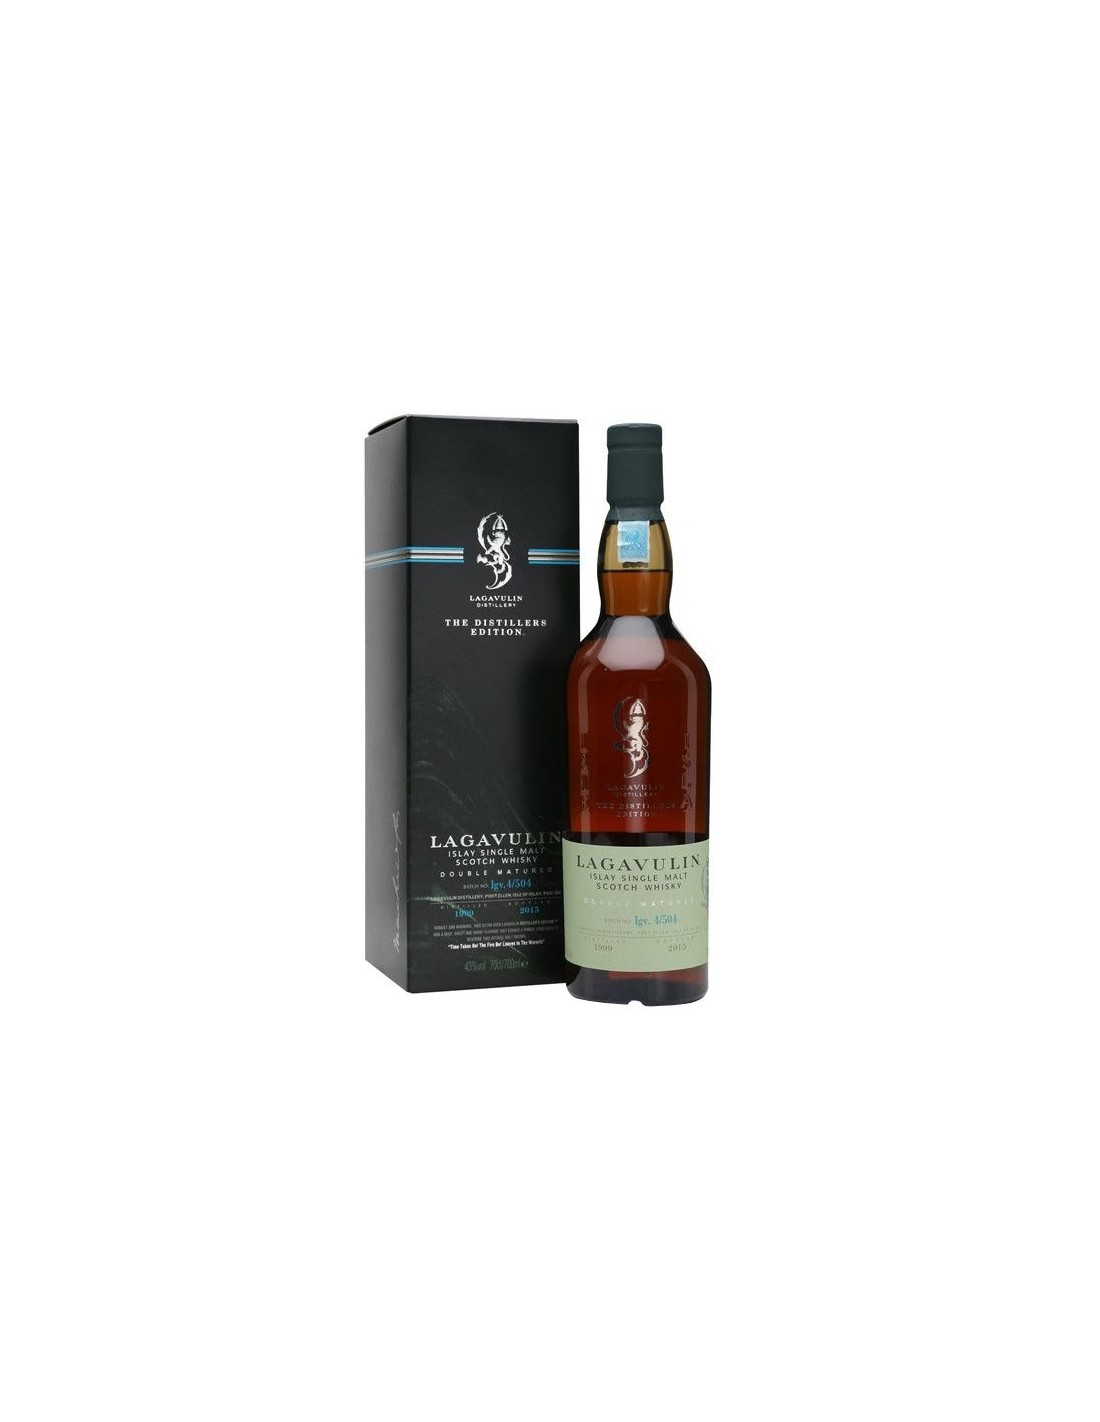 Whisky Lagavulin Distiller's Edition, 43% alc., 0.7L, Scotia